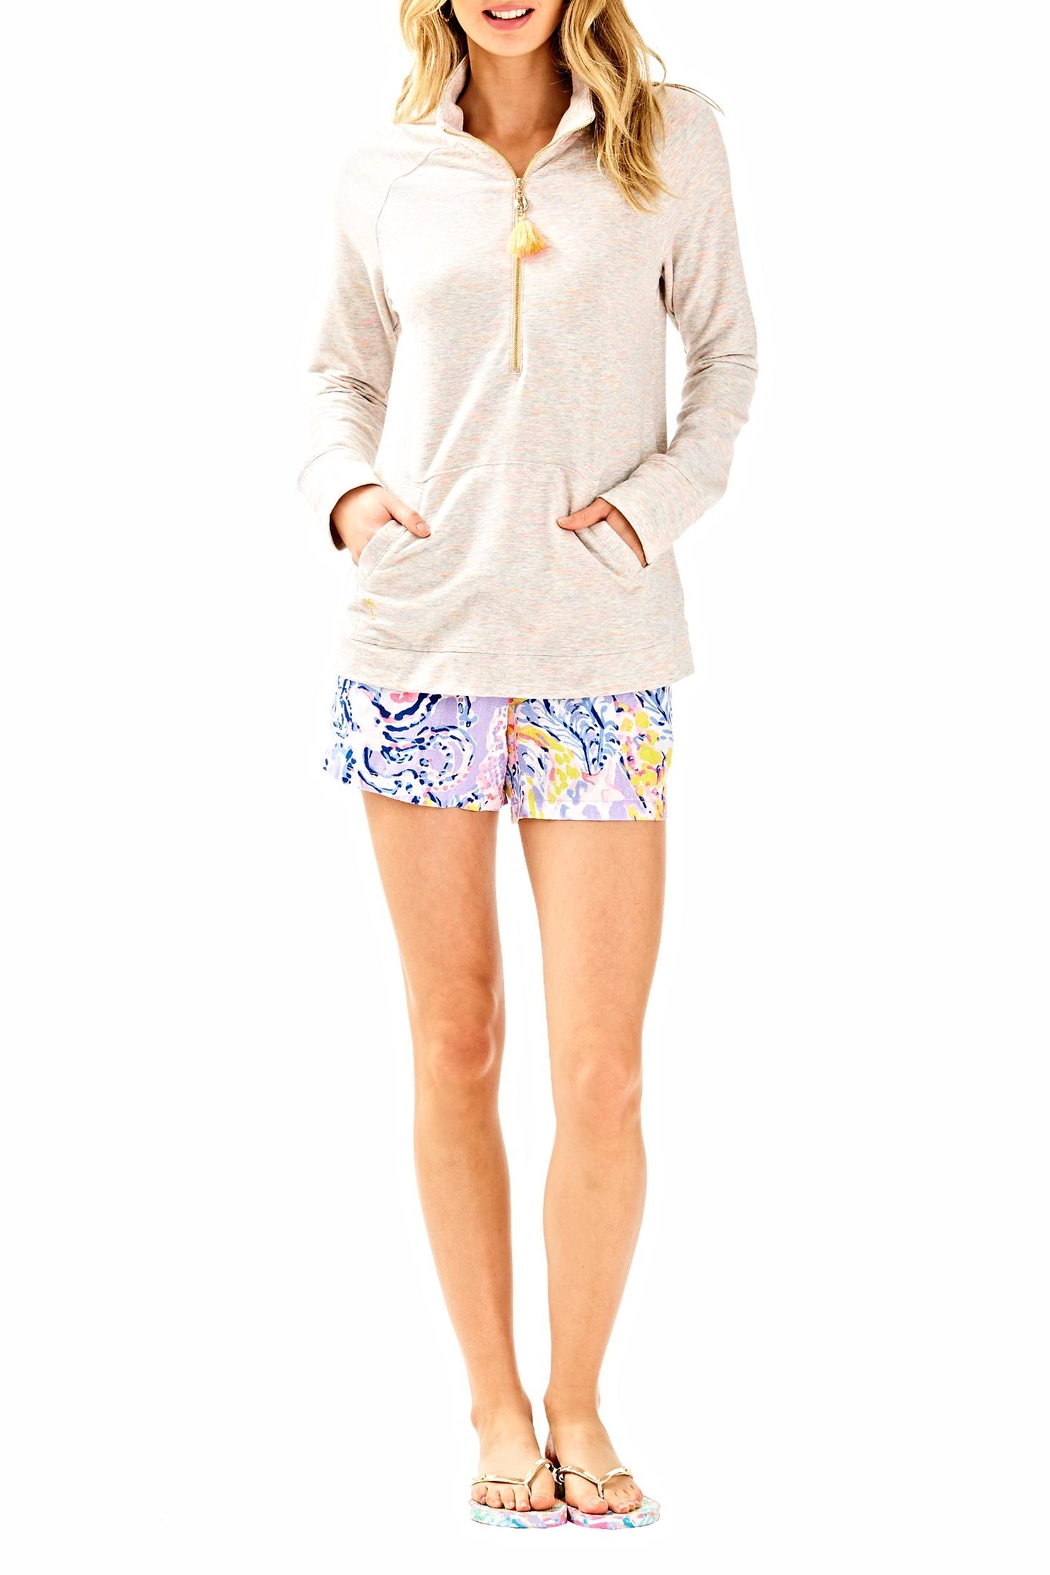 Lilly Pulitzer Skipper Solid Jacket - Side Cropped Image